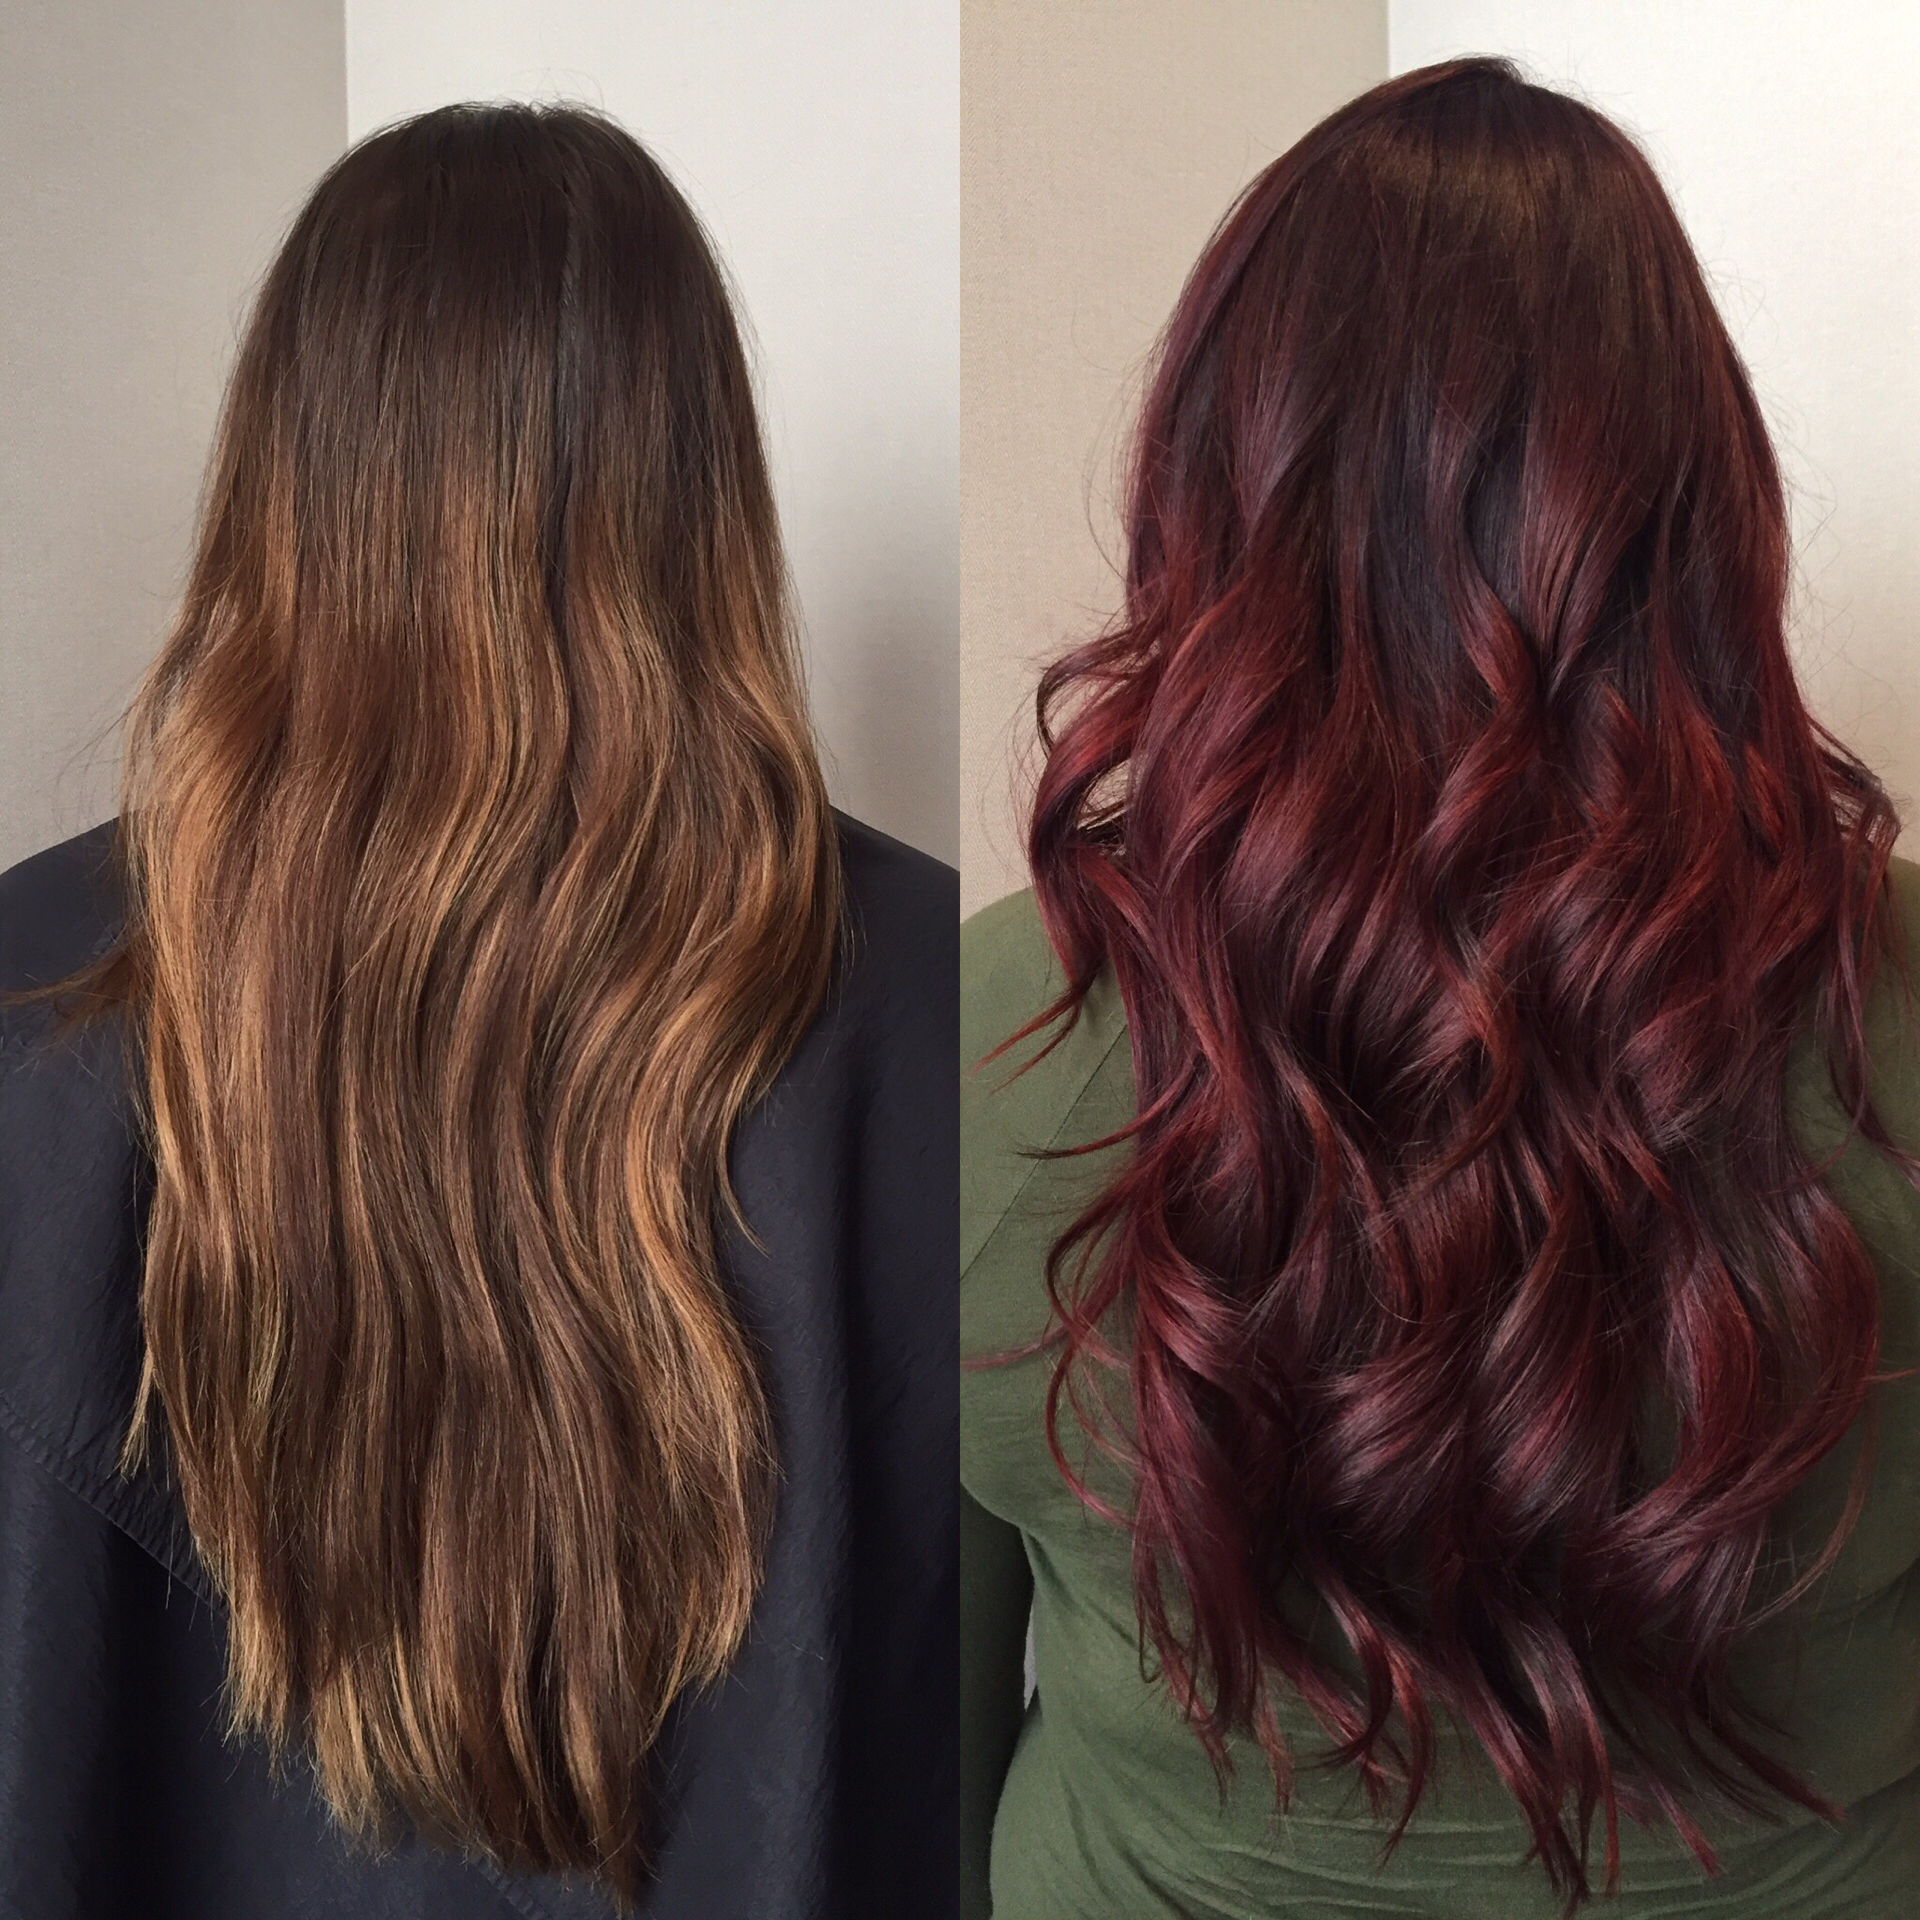 From Faded Chocolate And Copper Brown To Dark Cherry Hair By Ashley